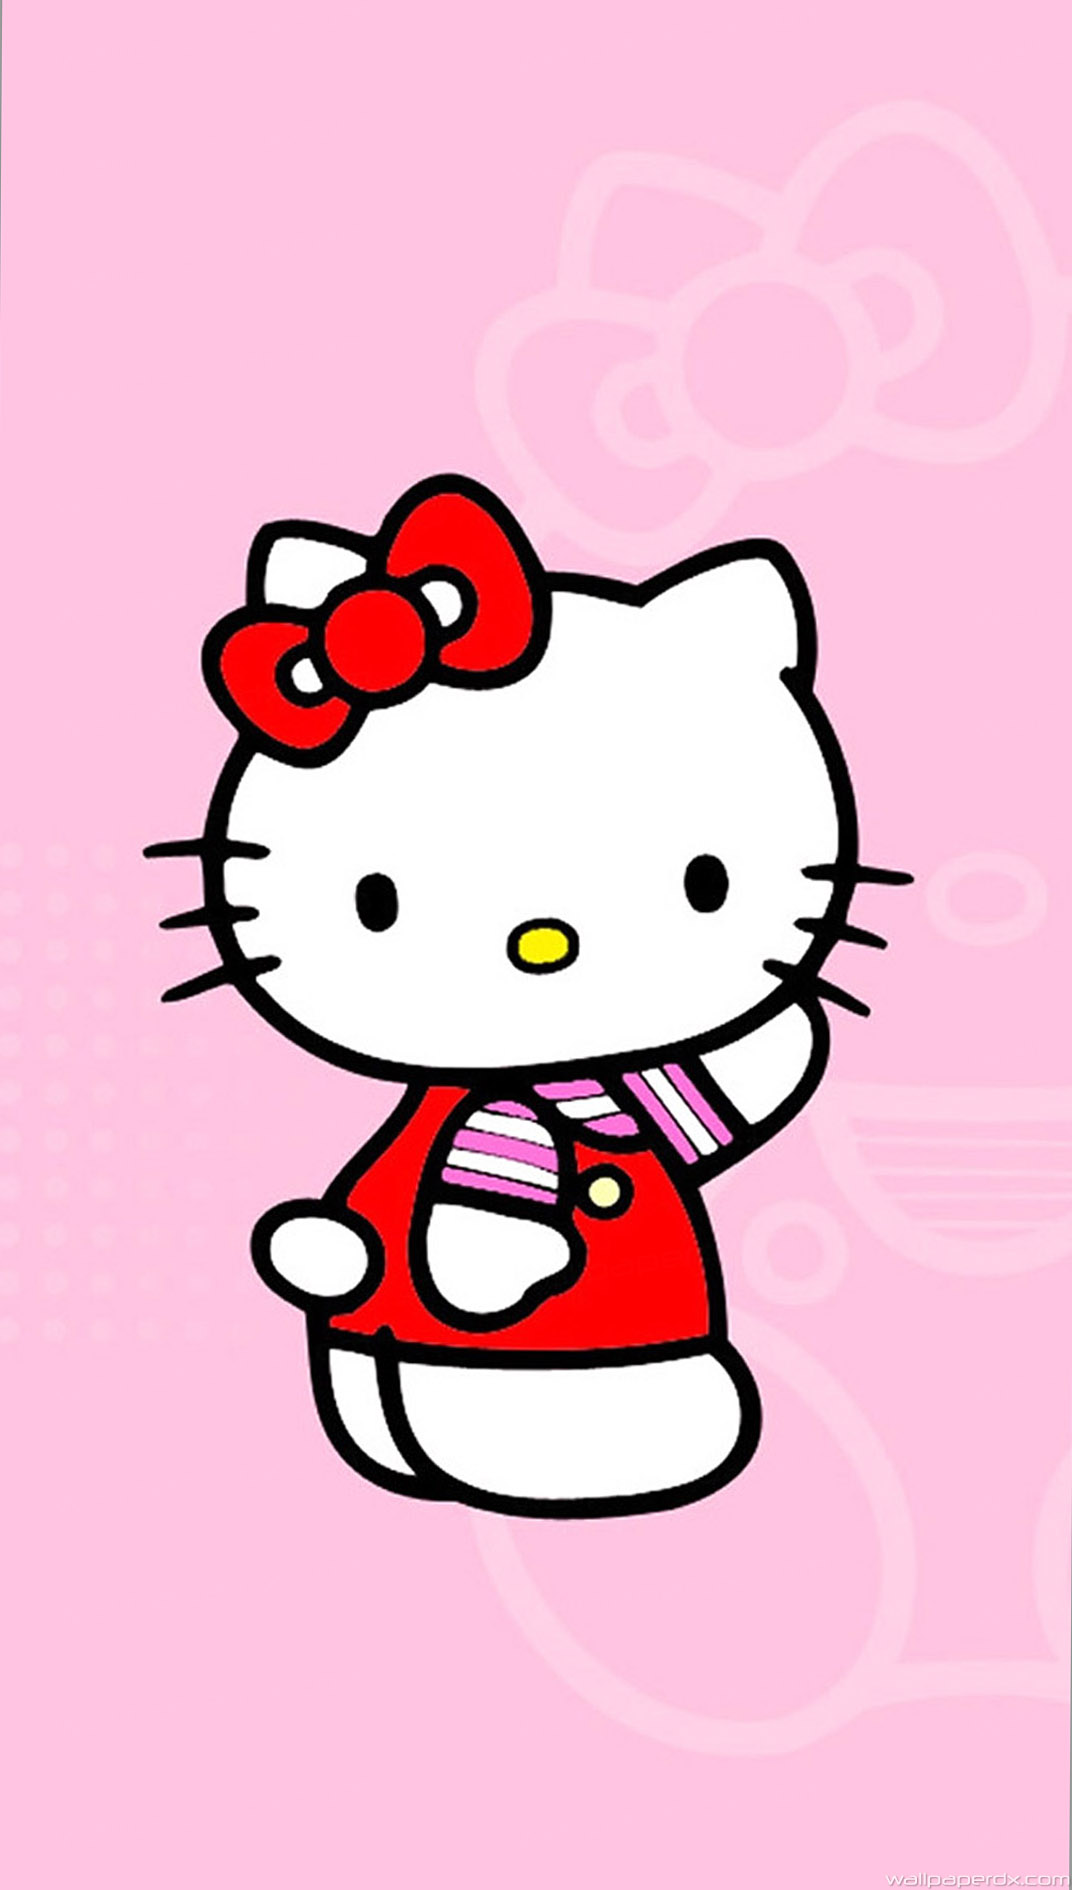 Free Download Cute Hello Kitty Iphone 6 Iphone 6 Plus Full Hd